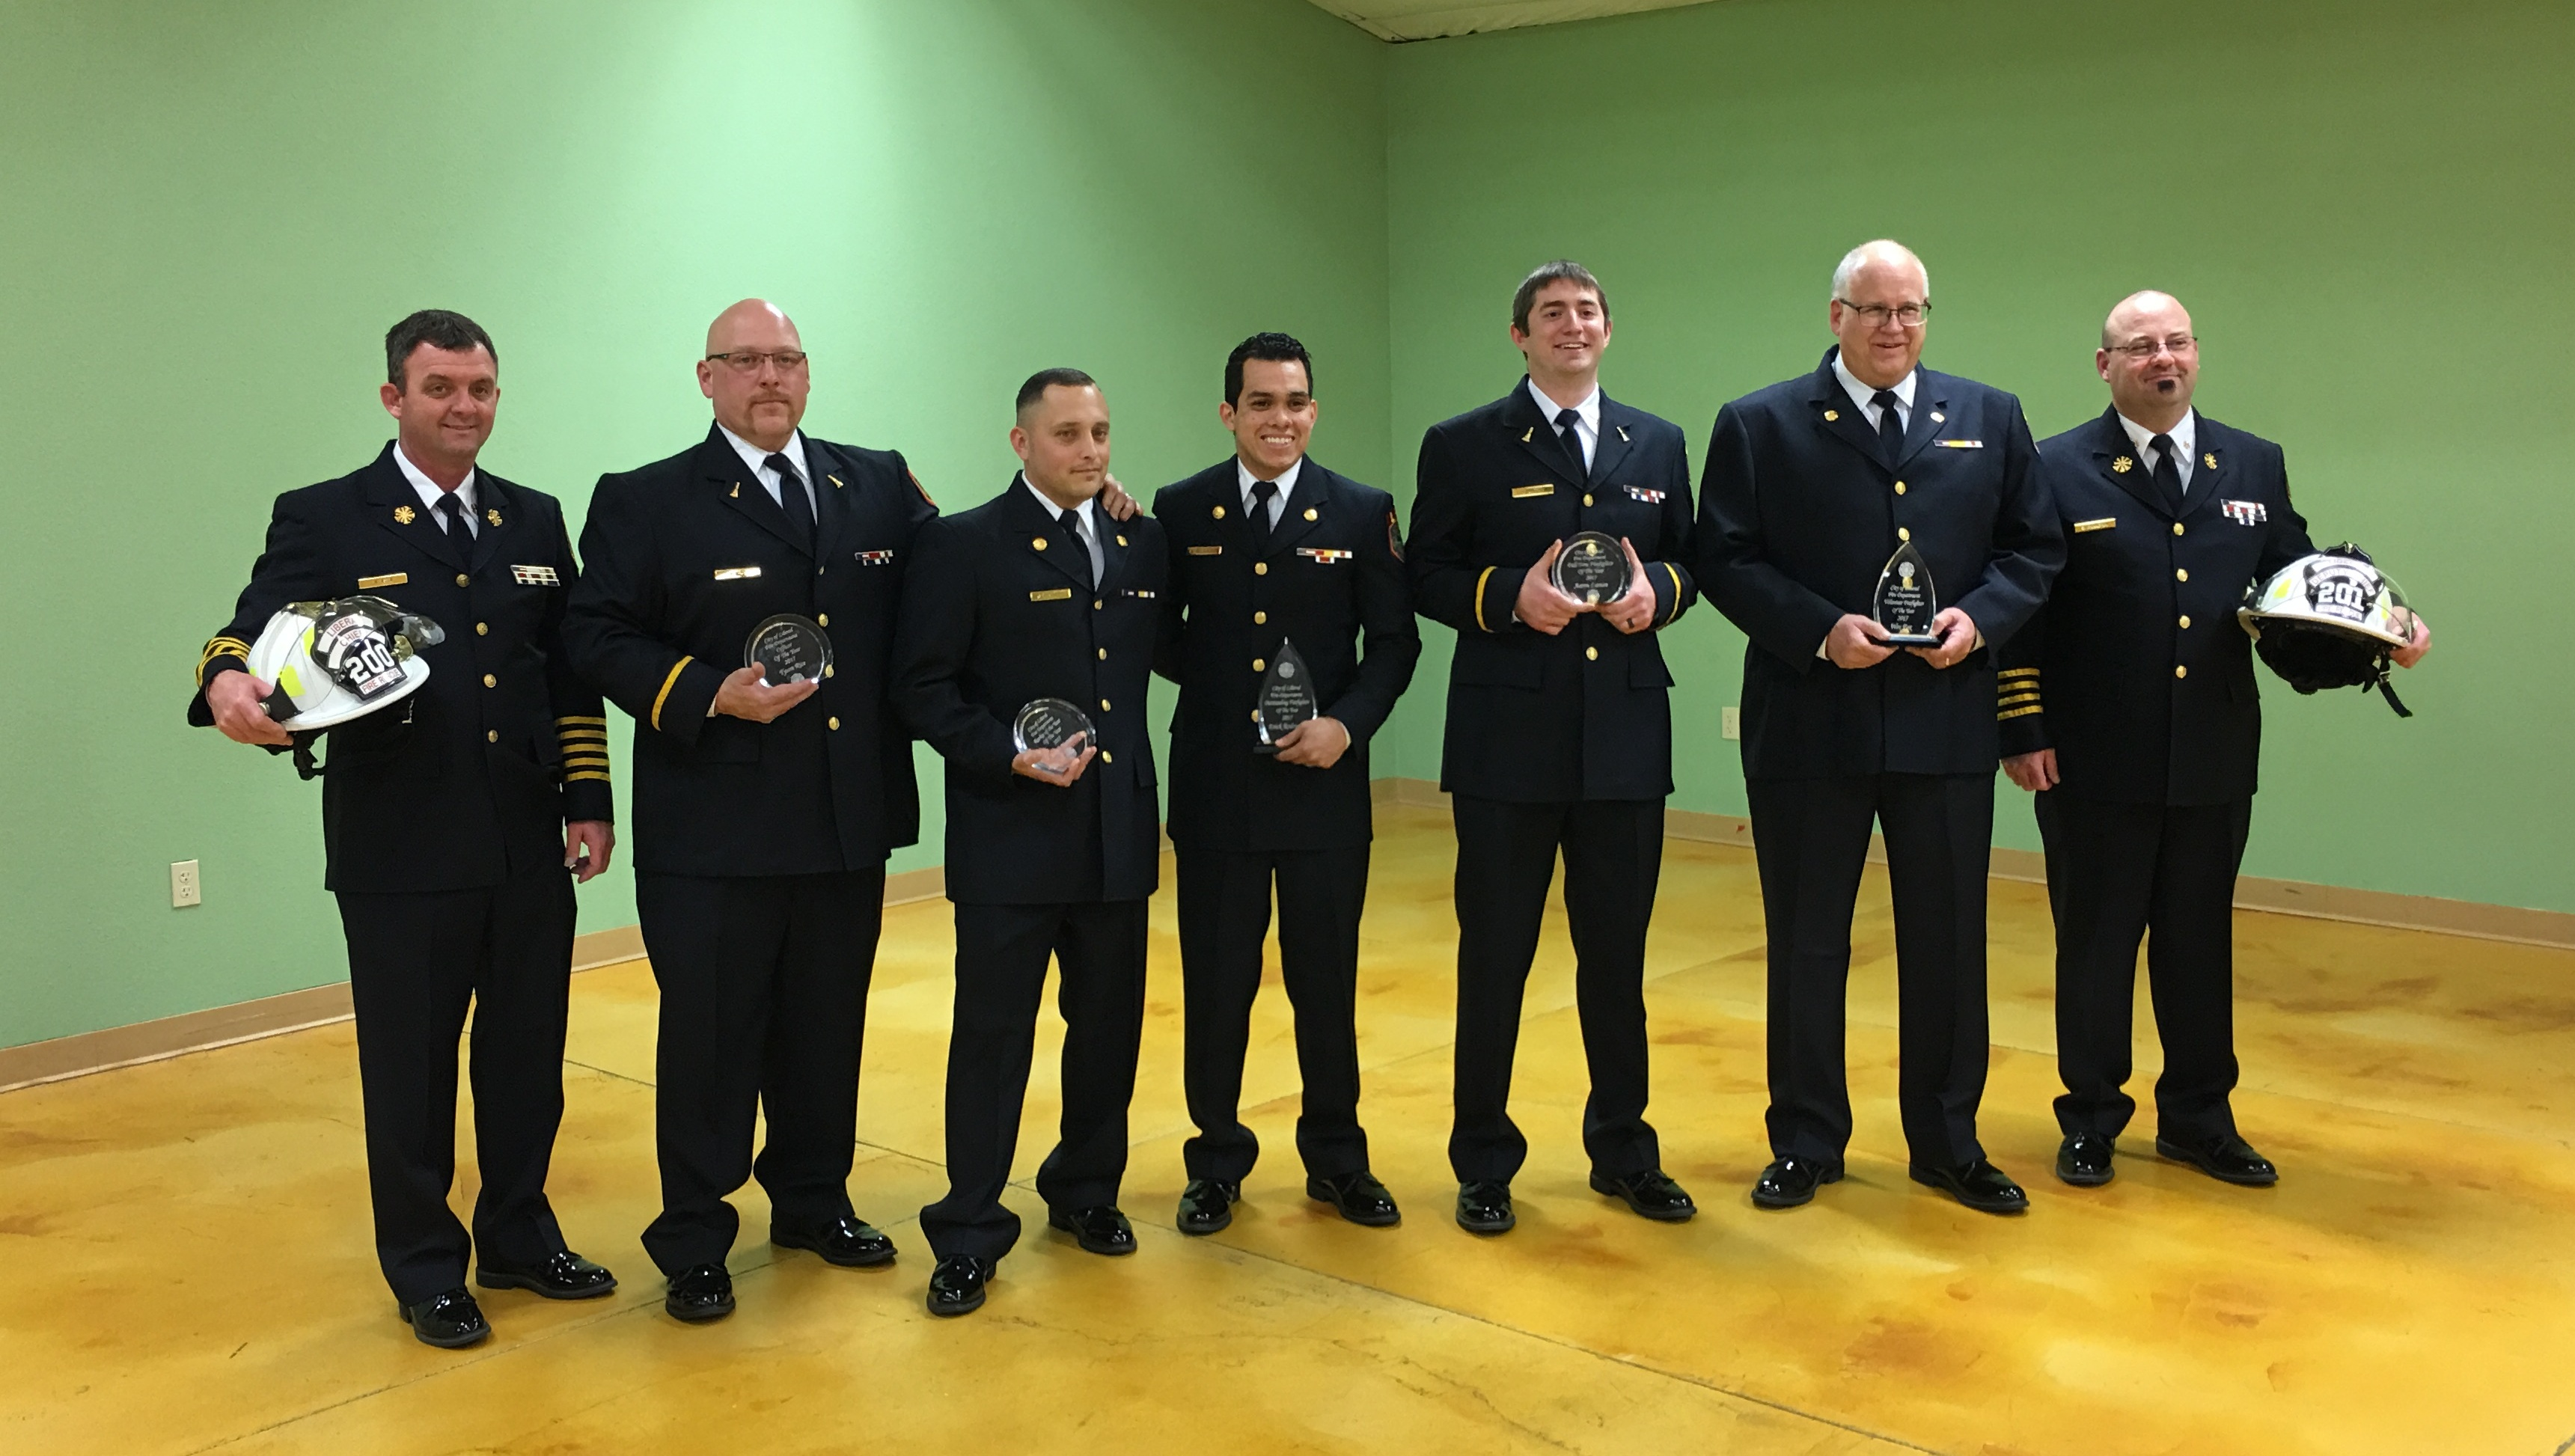 Liberal Fire Department Award & Recognition Ceremony